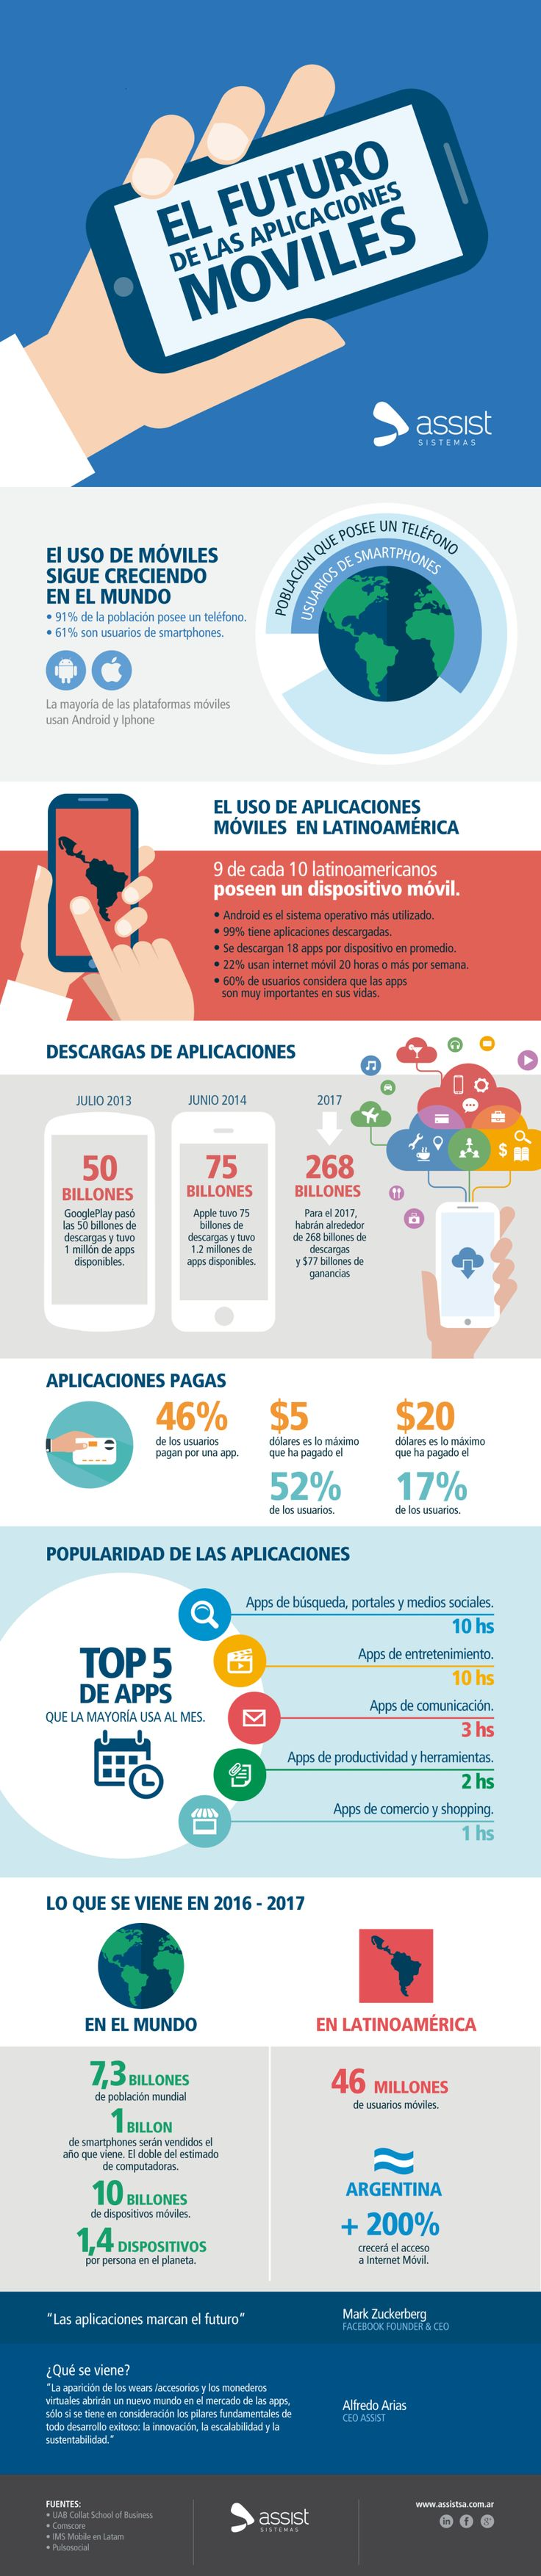 El futuro de las Aplicaciones Móviles #infografia #infographic #software | Tecnología | Pinterest | App, Digital marketing and Marketing